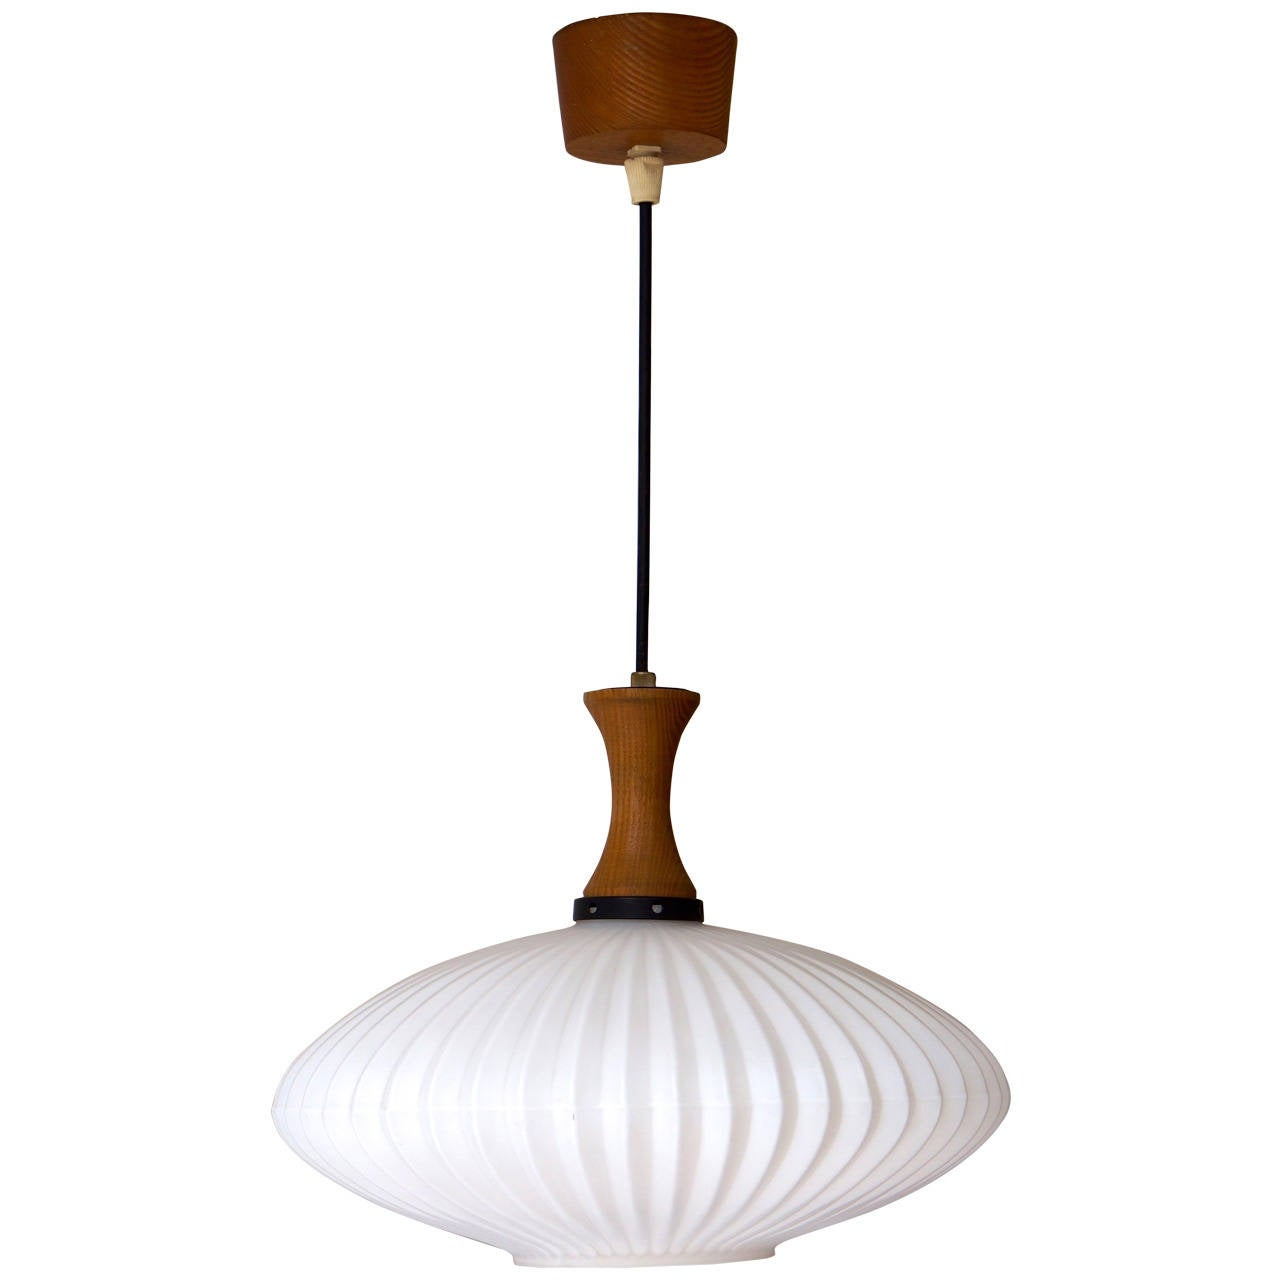 Mid century danish glass and wood chandelier pendant for Mid century modern pendant light fixtures